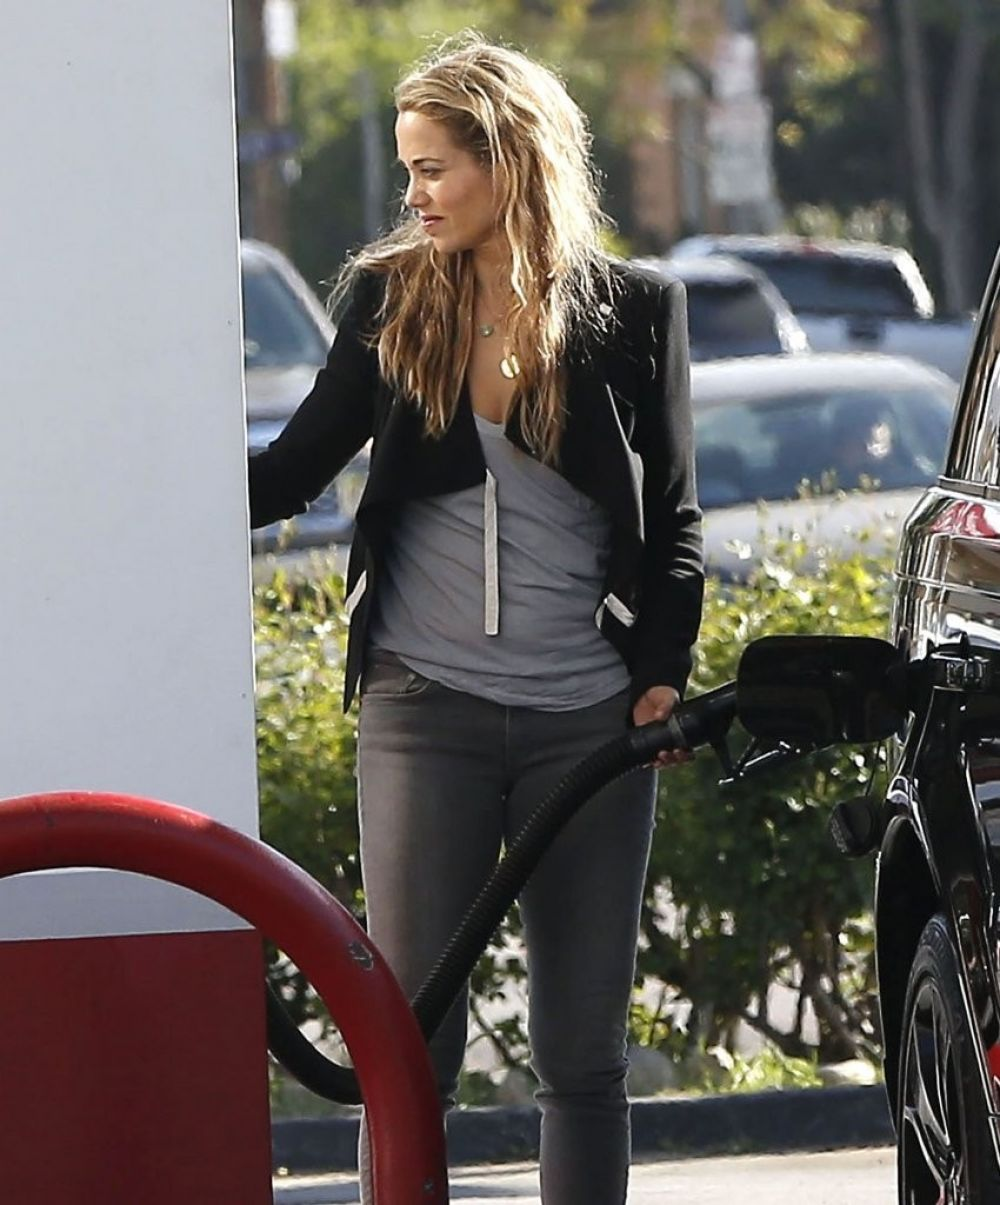 ELIZABETH BERKLEY at a Gas Station in Los Angeles